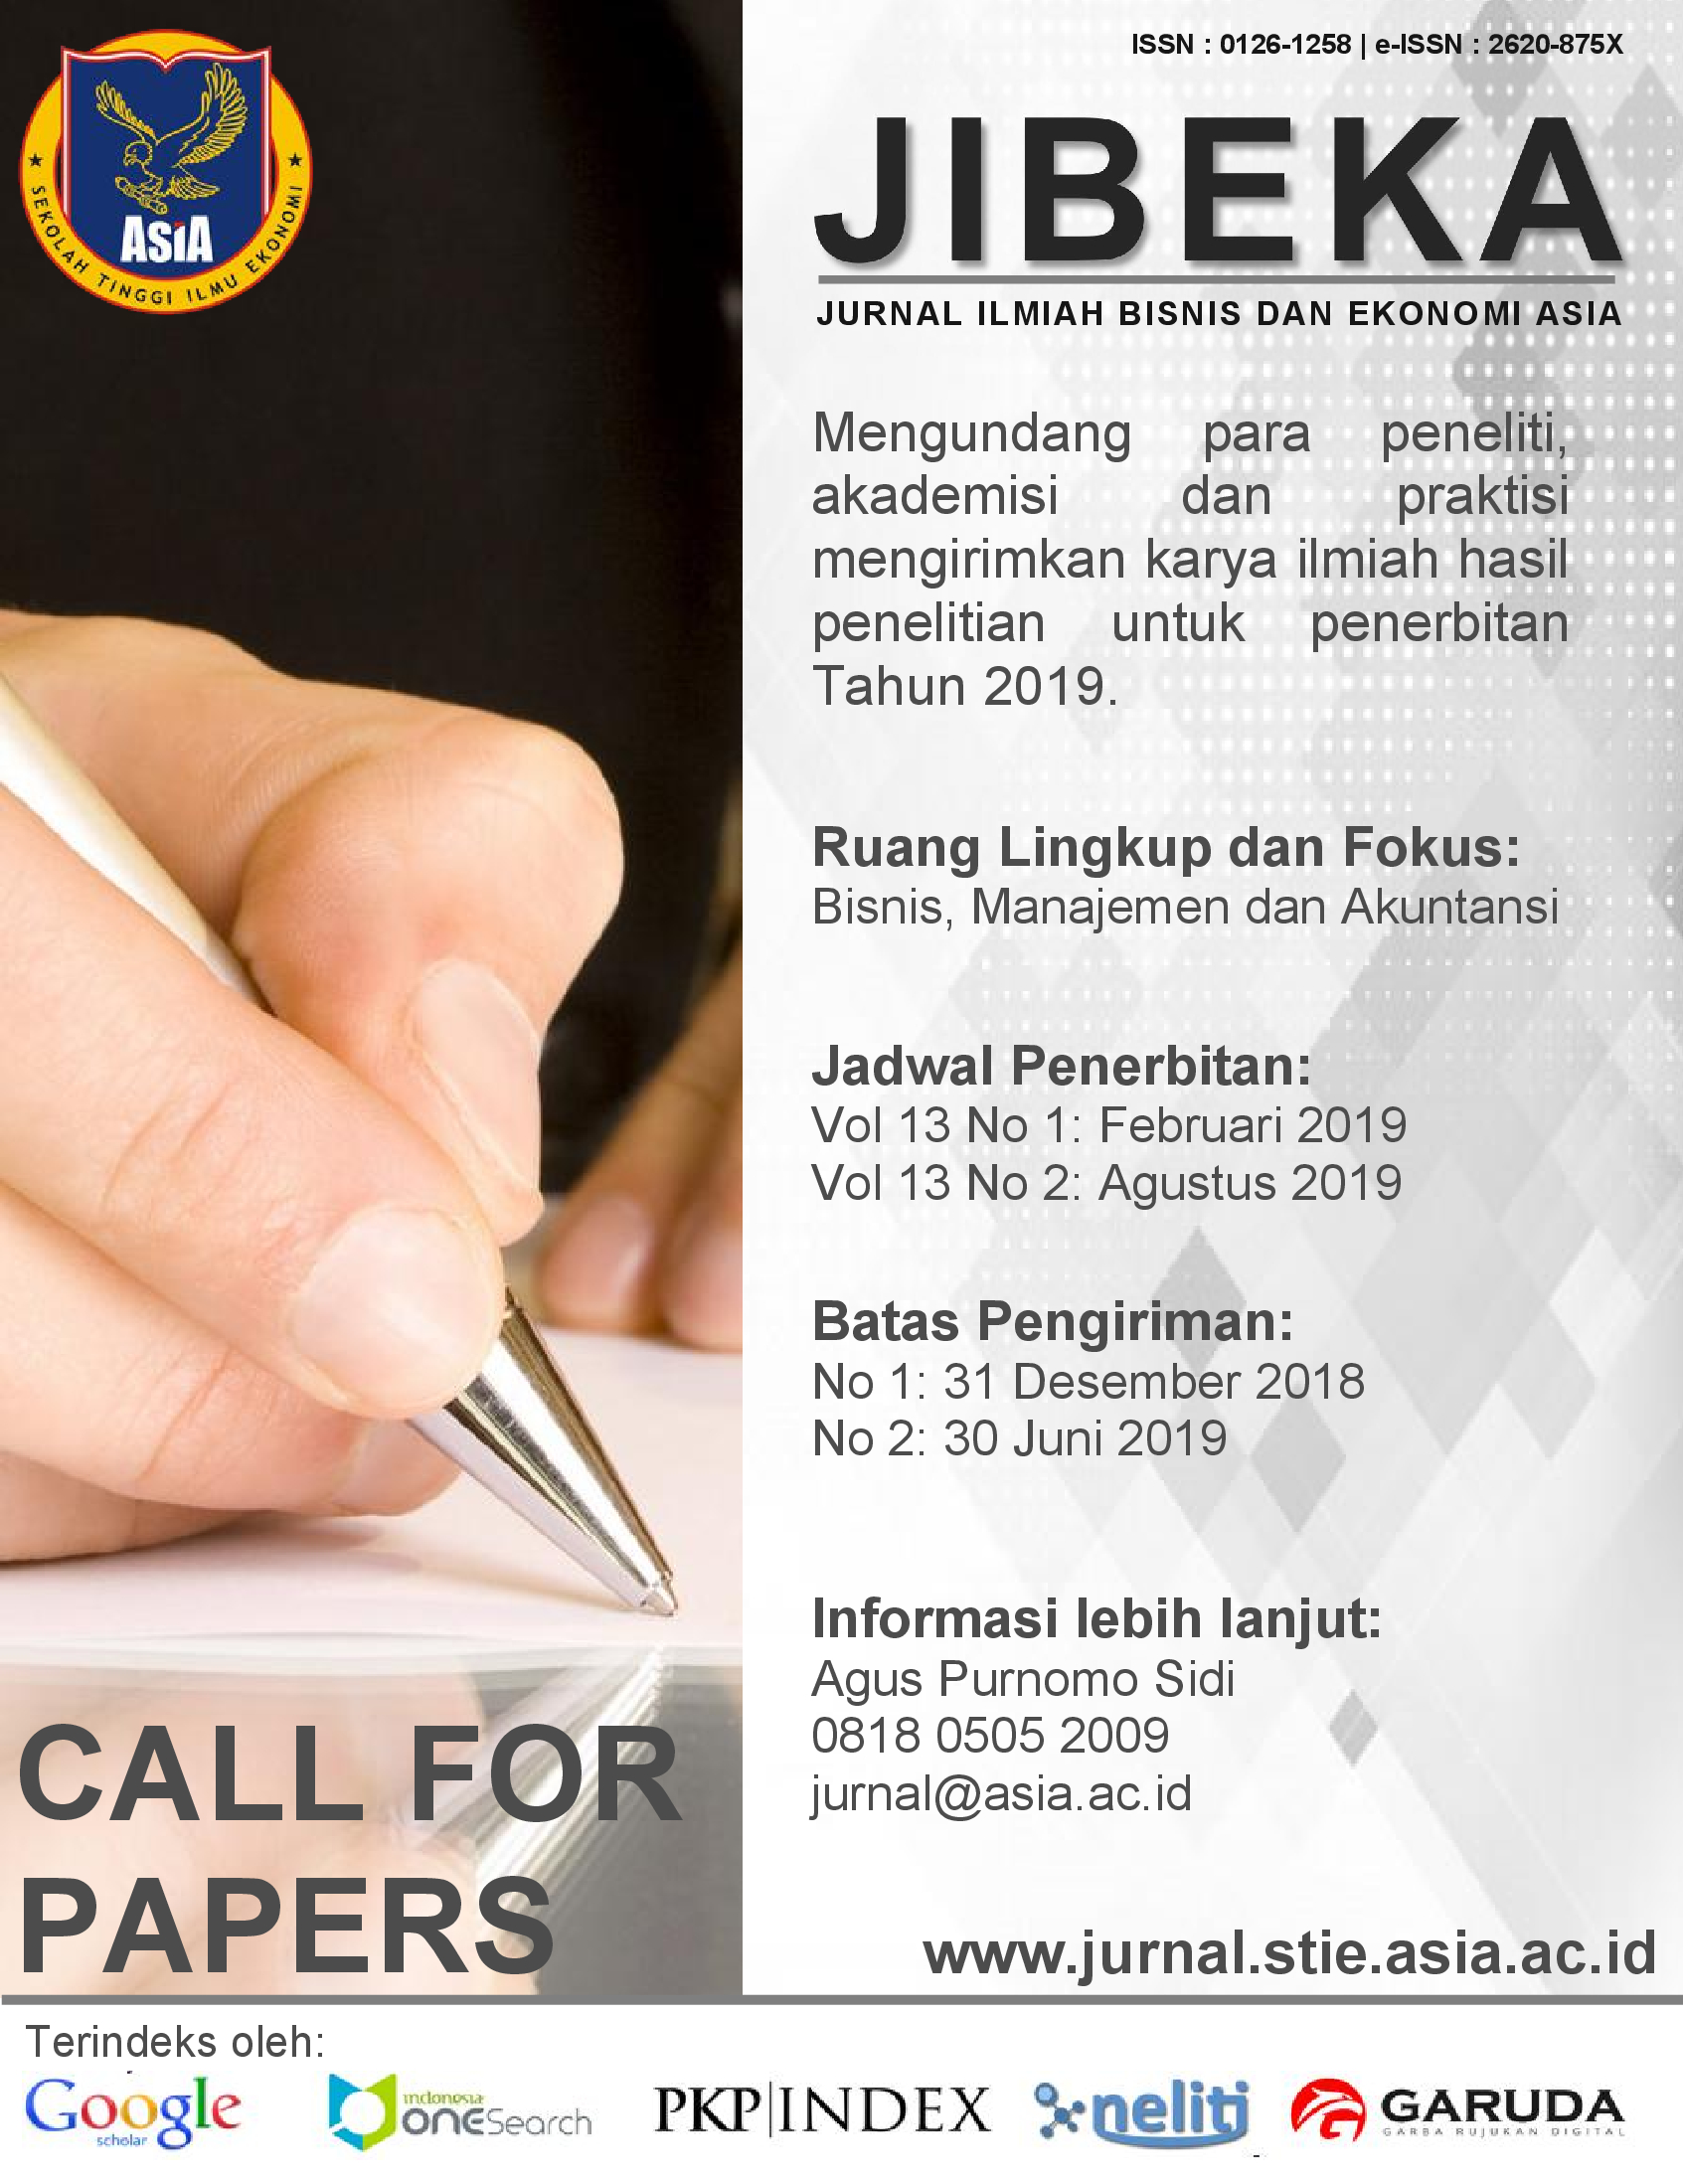 poster-call-for-paper2.jpg